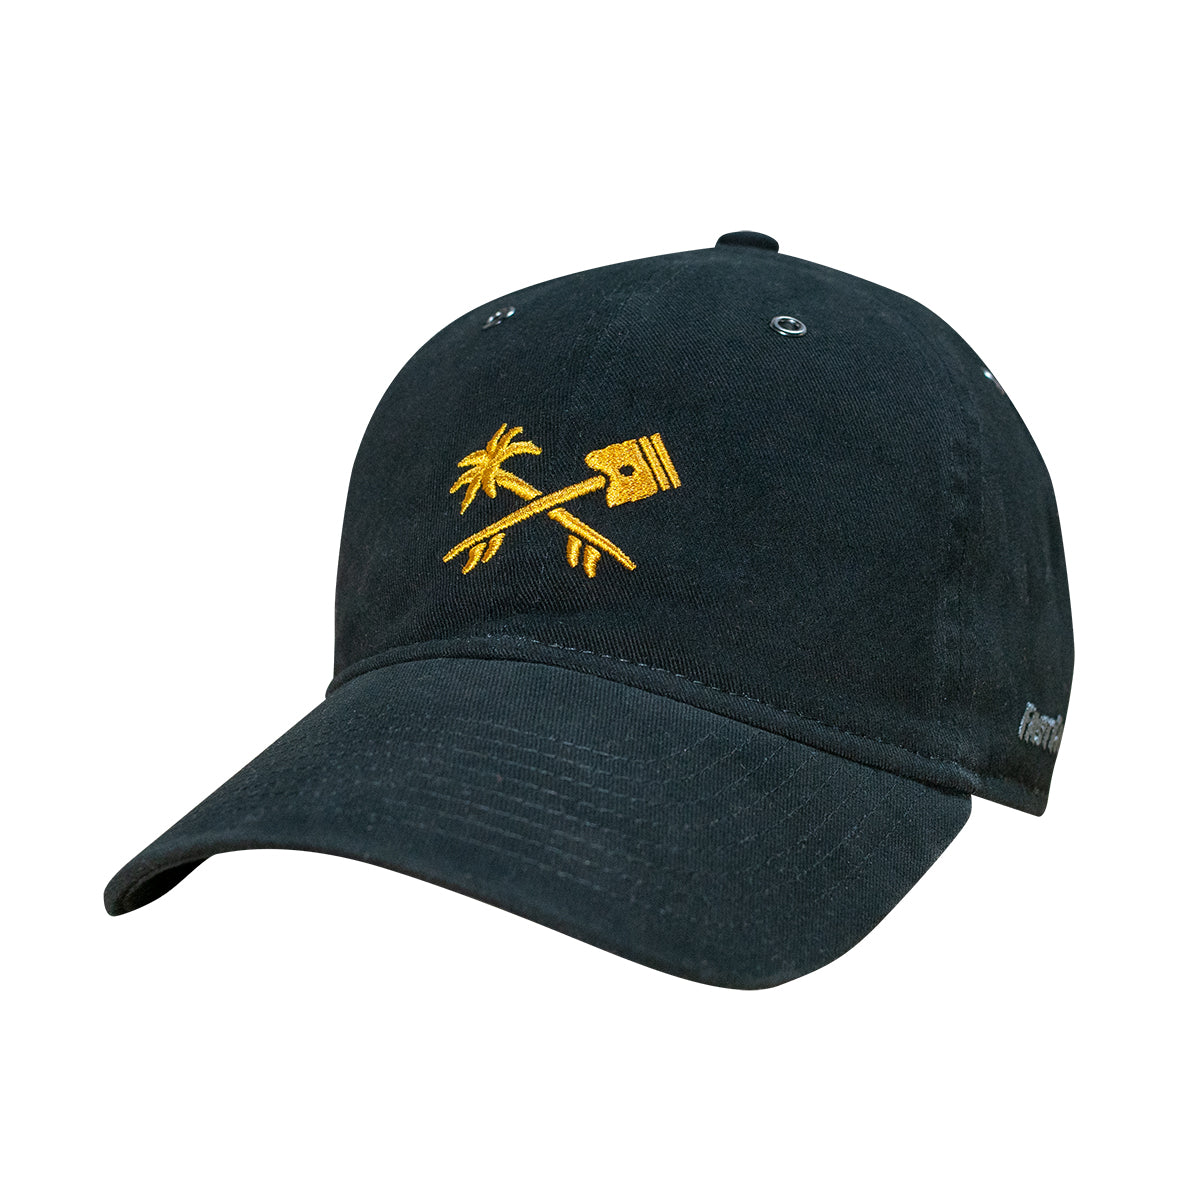 Fasthouse - Hawkins Crest Hat - Black